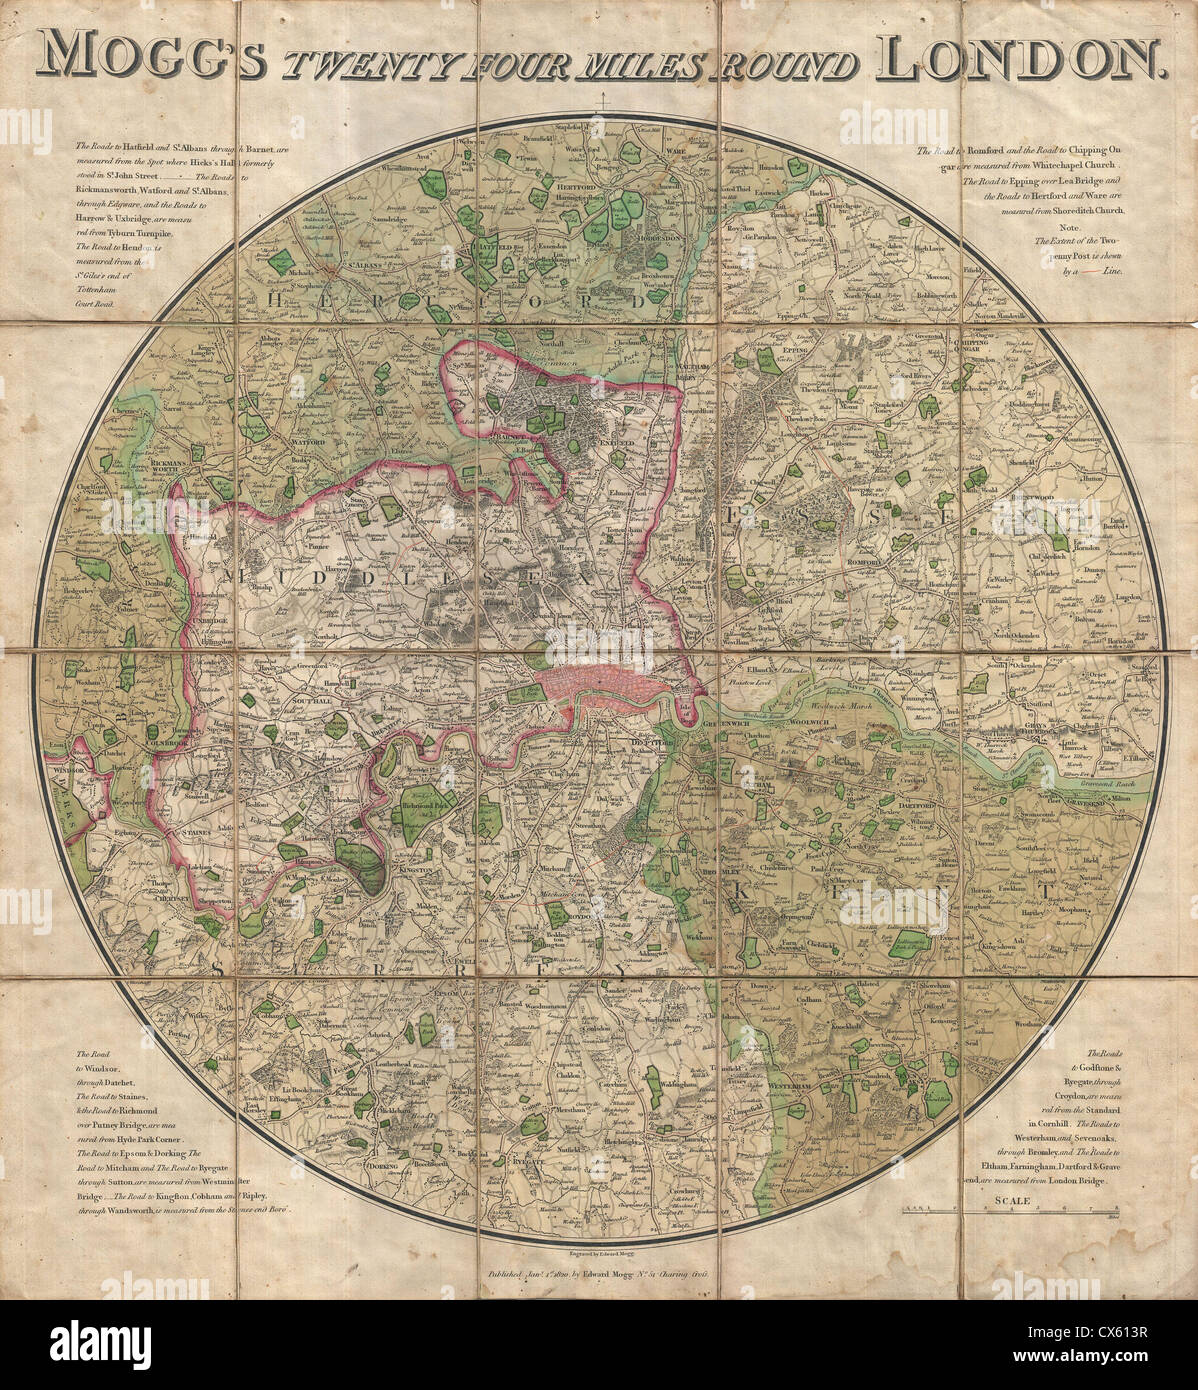 1820 Mogg Pocket or Case Map of London, England (24 Miles around - Stock Image